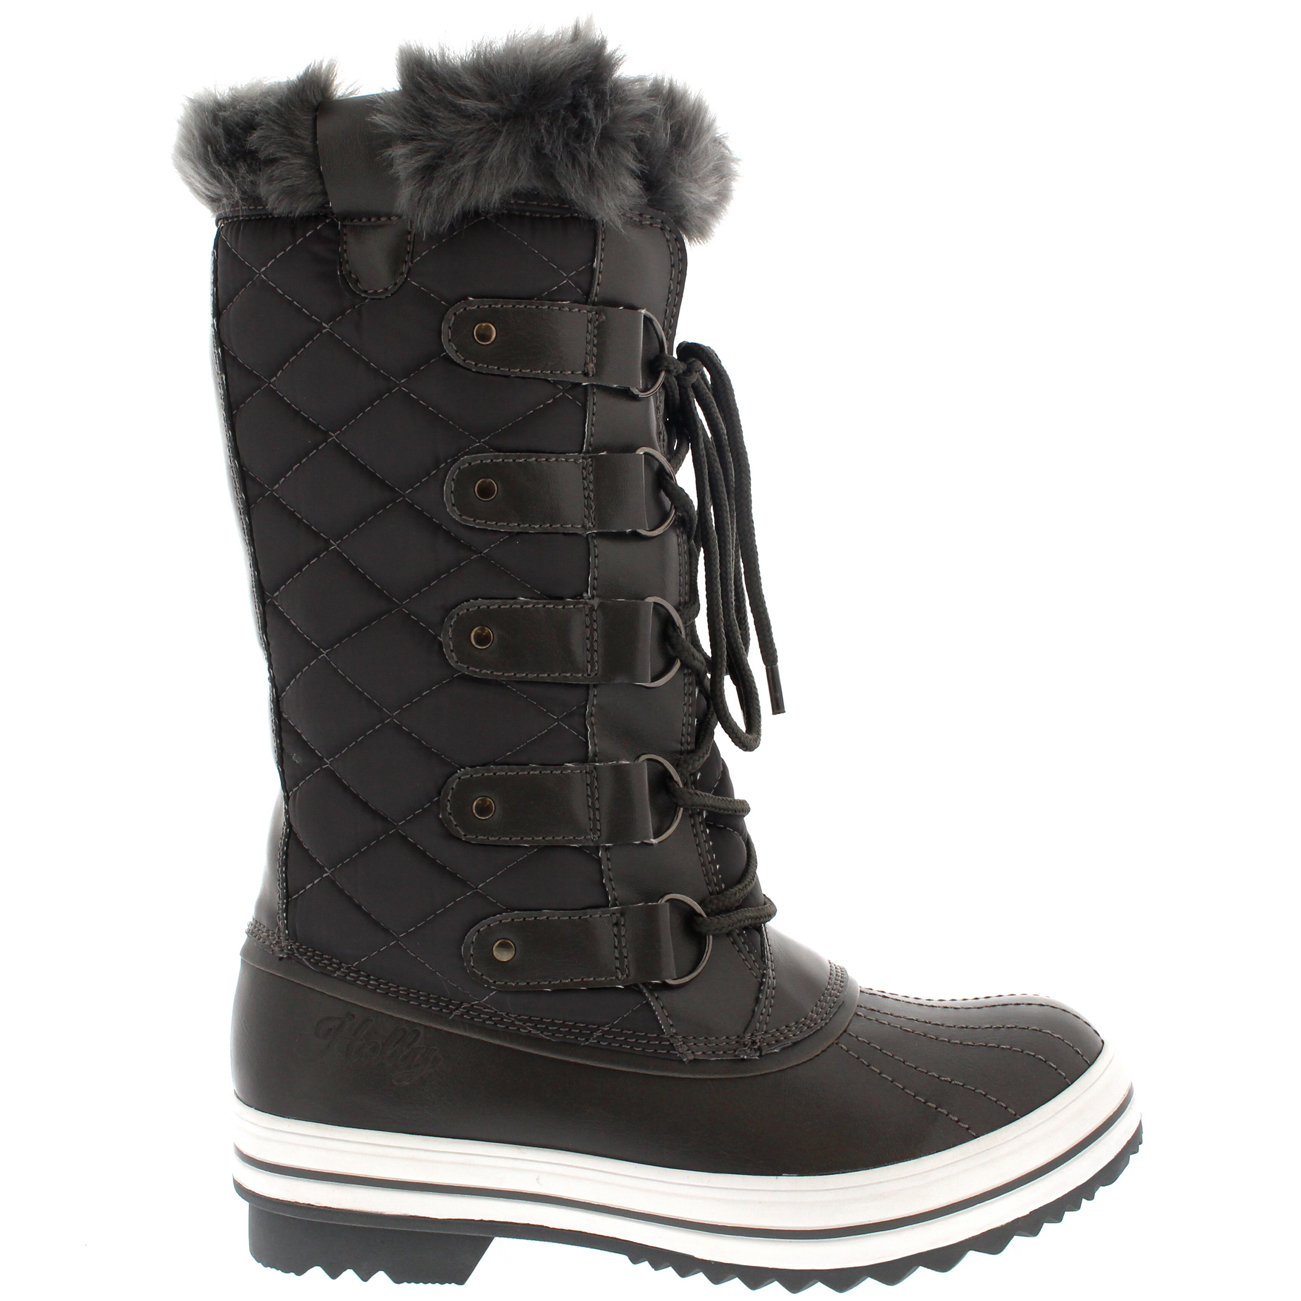 Womens Snow Boot Nylon Tall Winter Snow Waterproof Fur Lined Warm ...